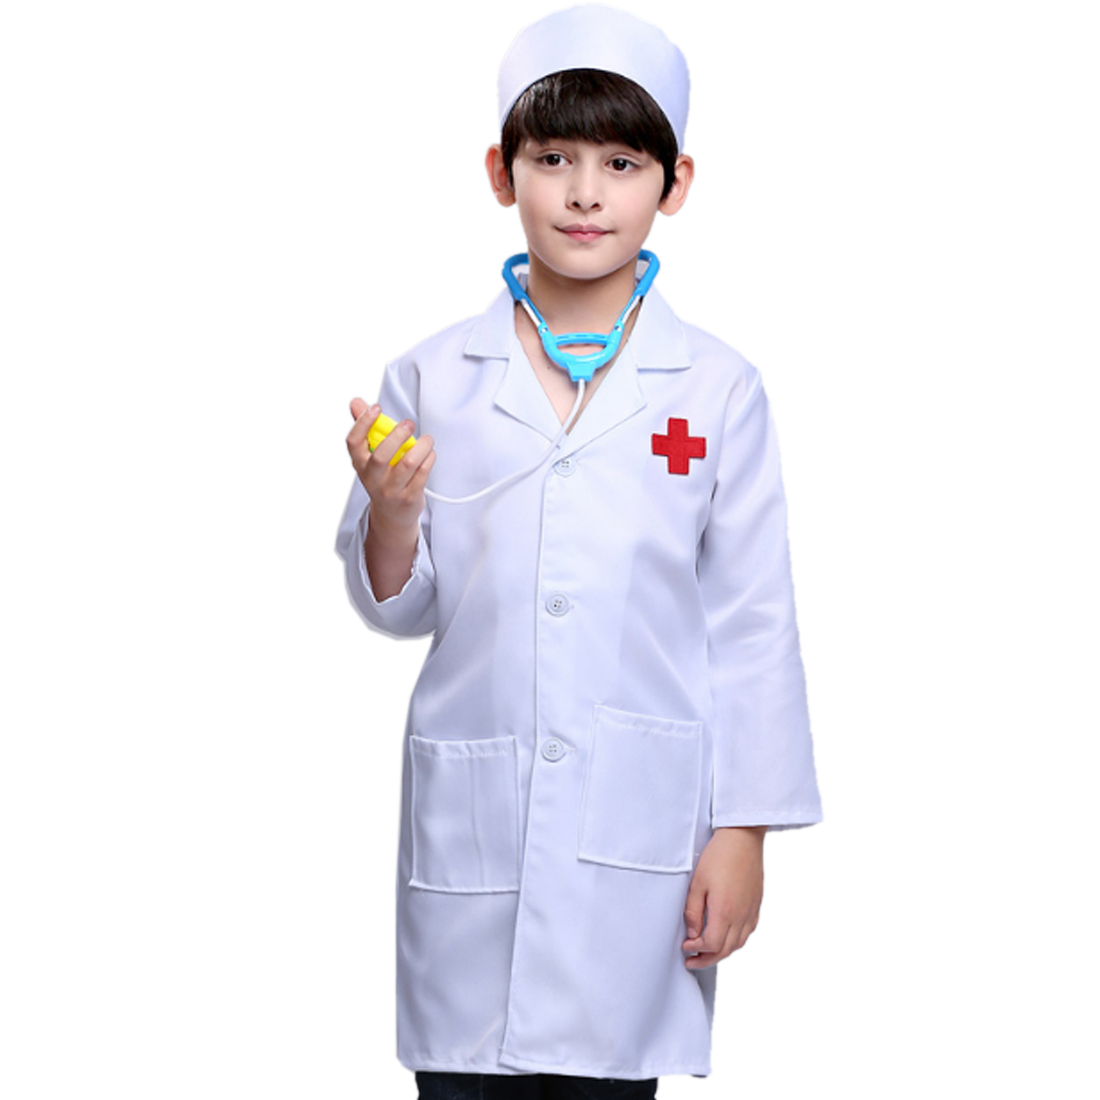 Pretend Play Little Nurse Doctor Professional Role Playing Costume For 90cm 110cm 130cm Children Boys- Long Doctor Sleeve + Cap